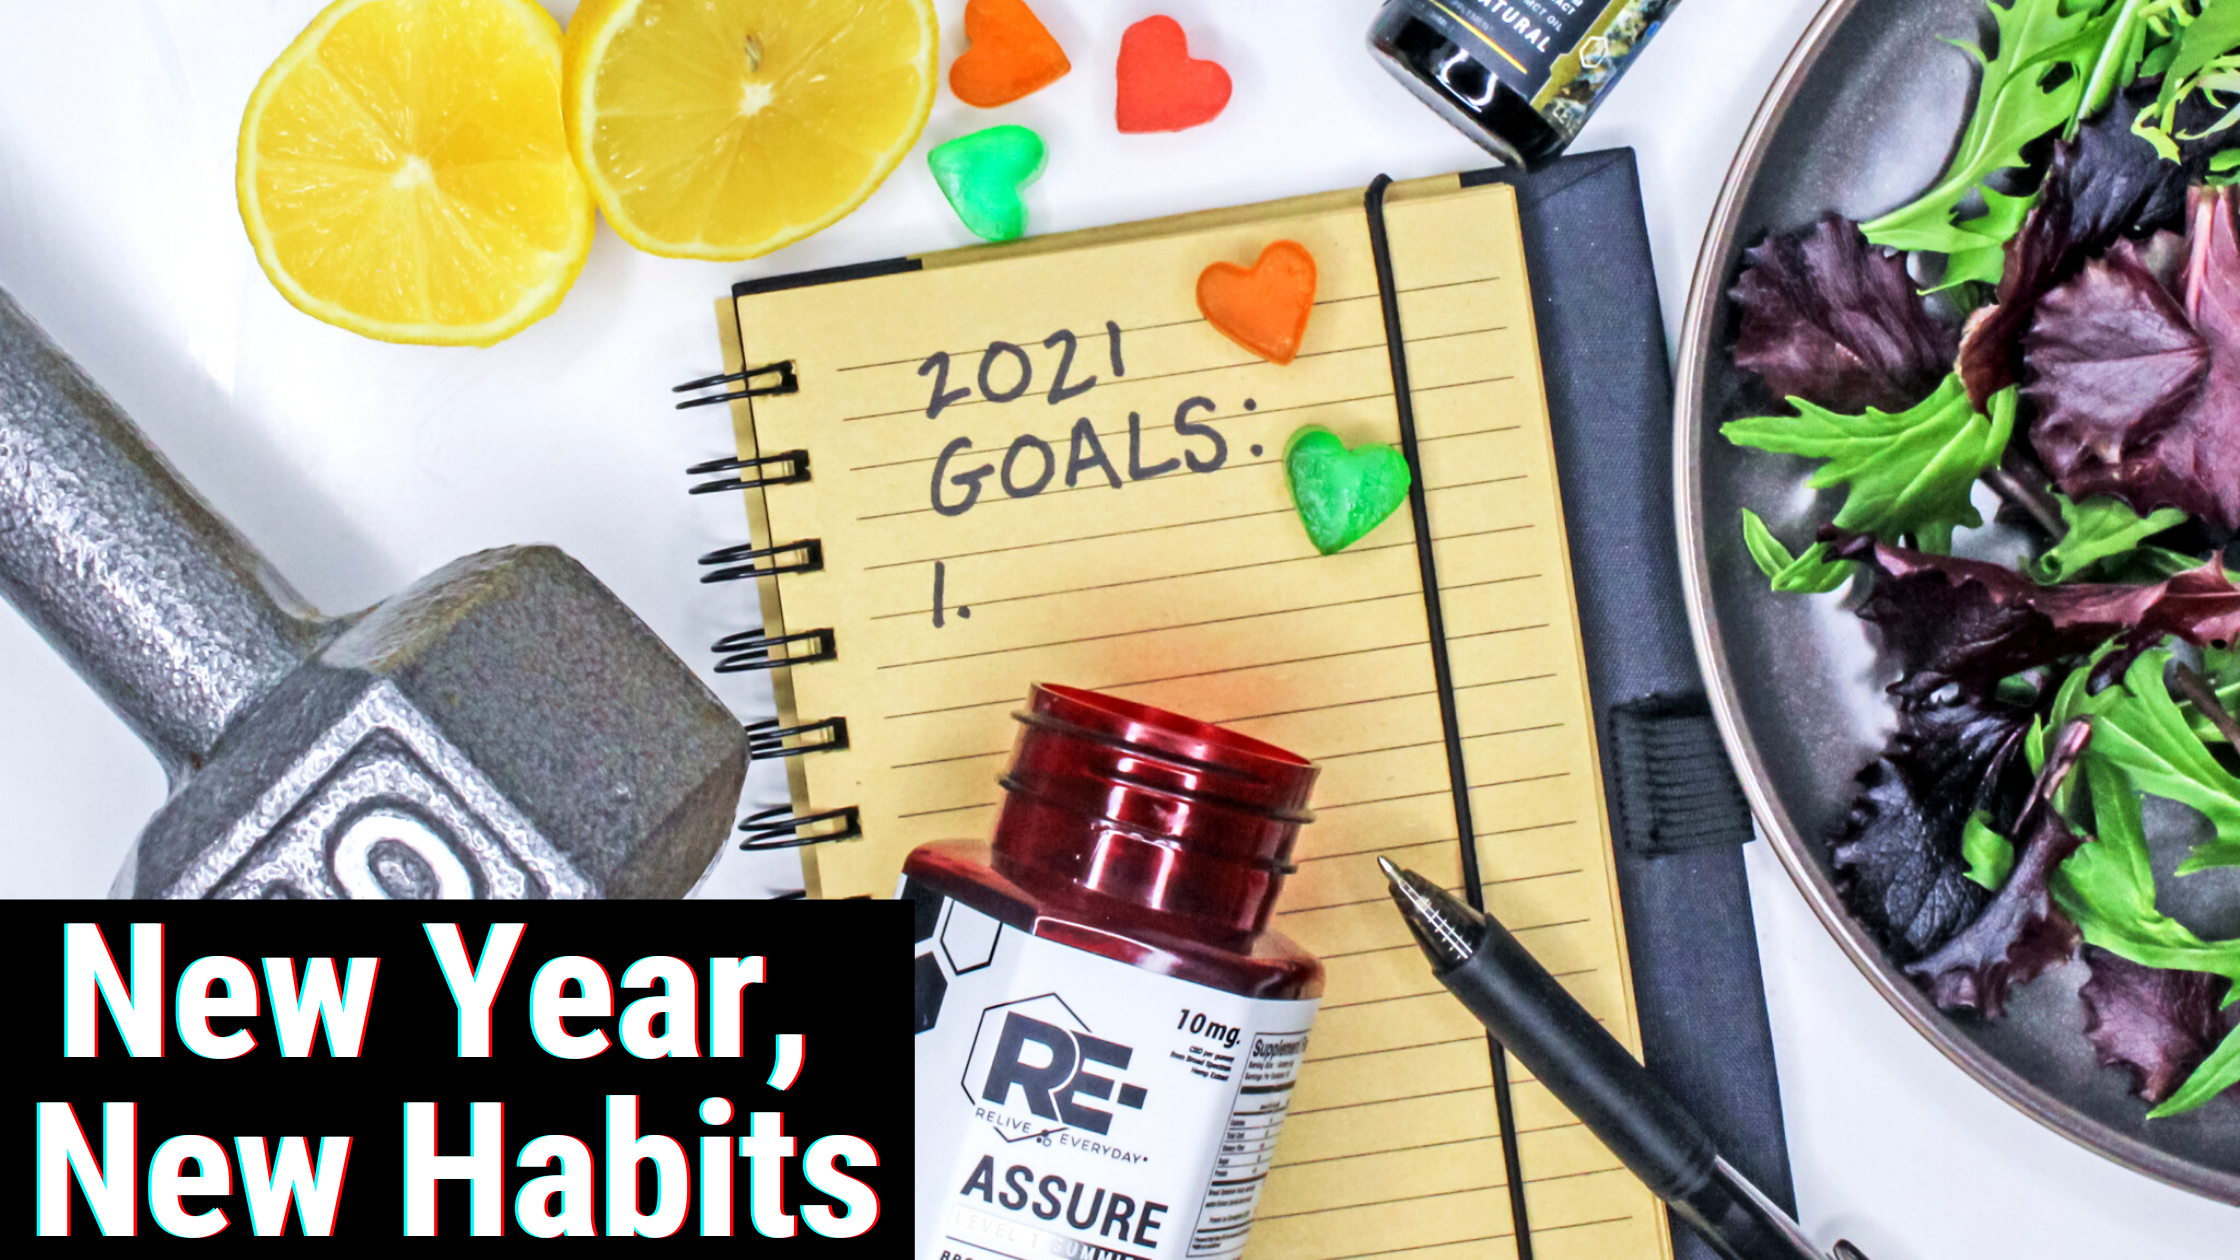 5 Healthy Habits to Make The Most of The New Year